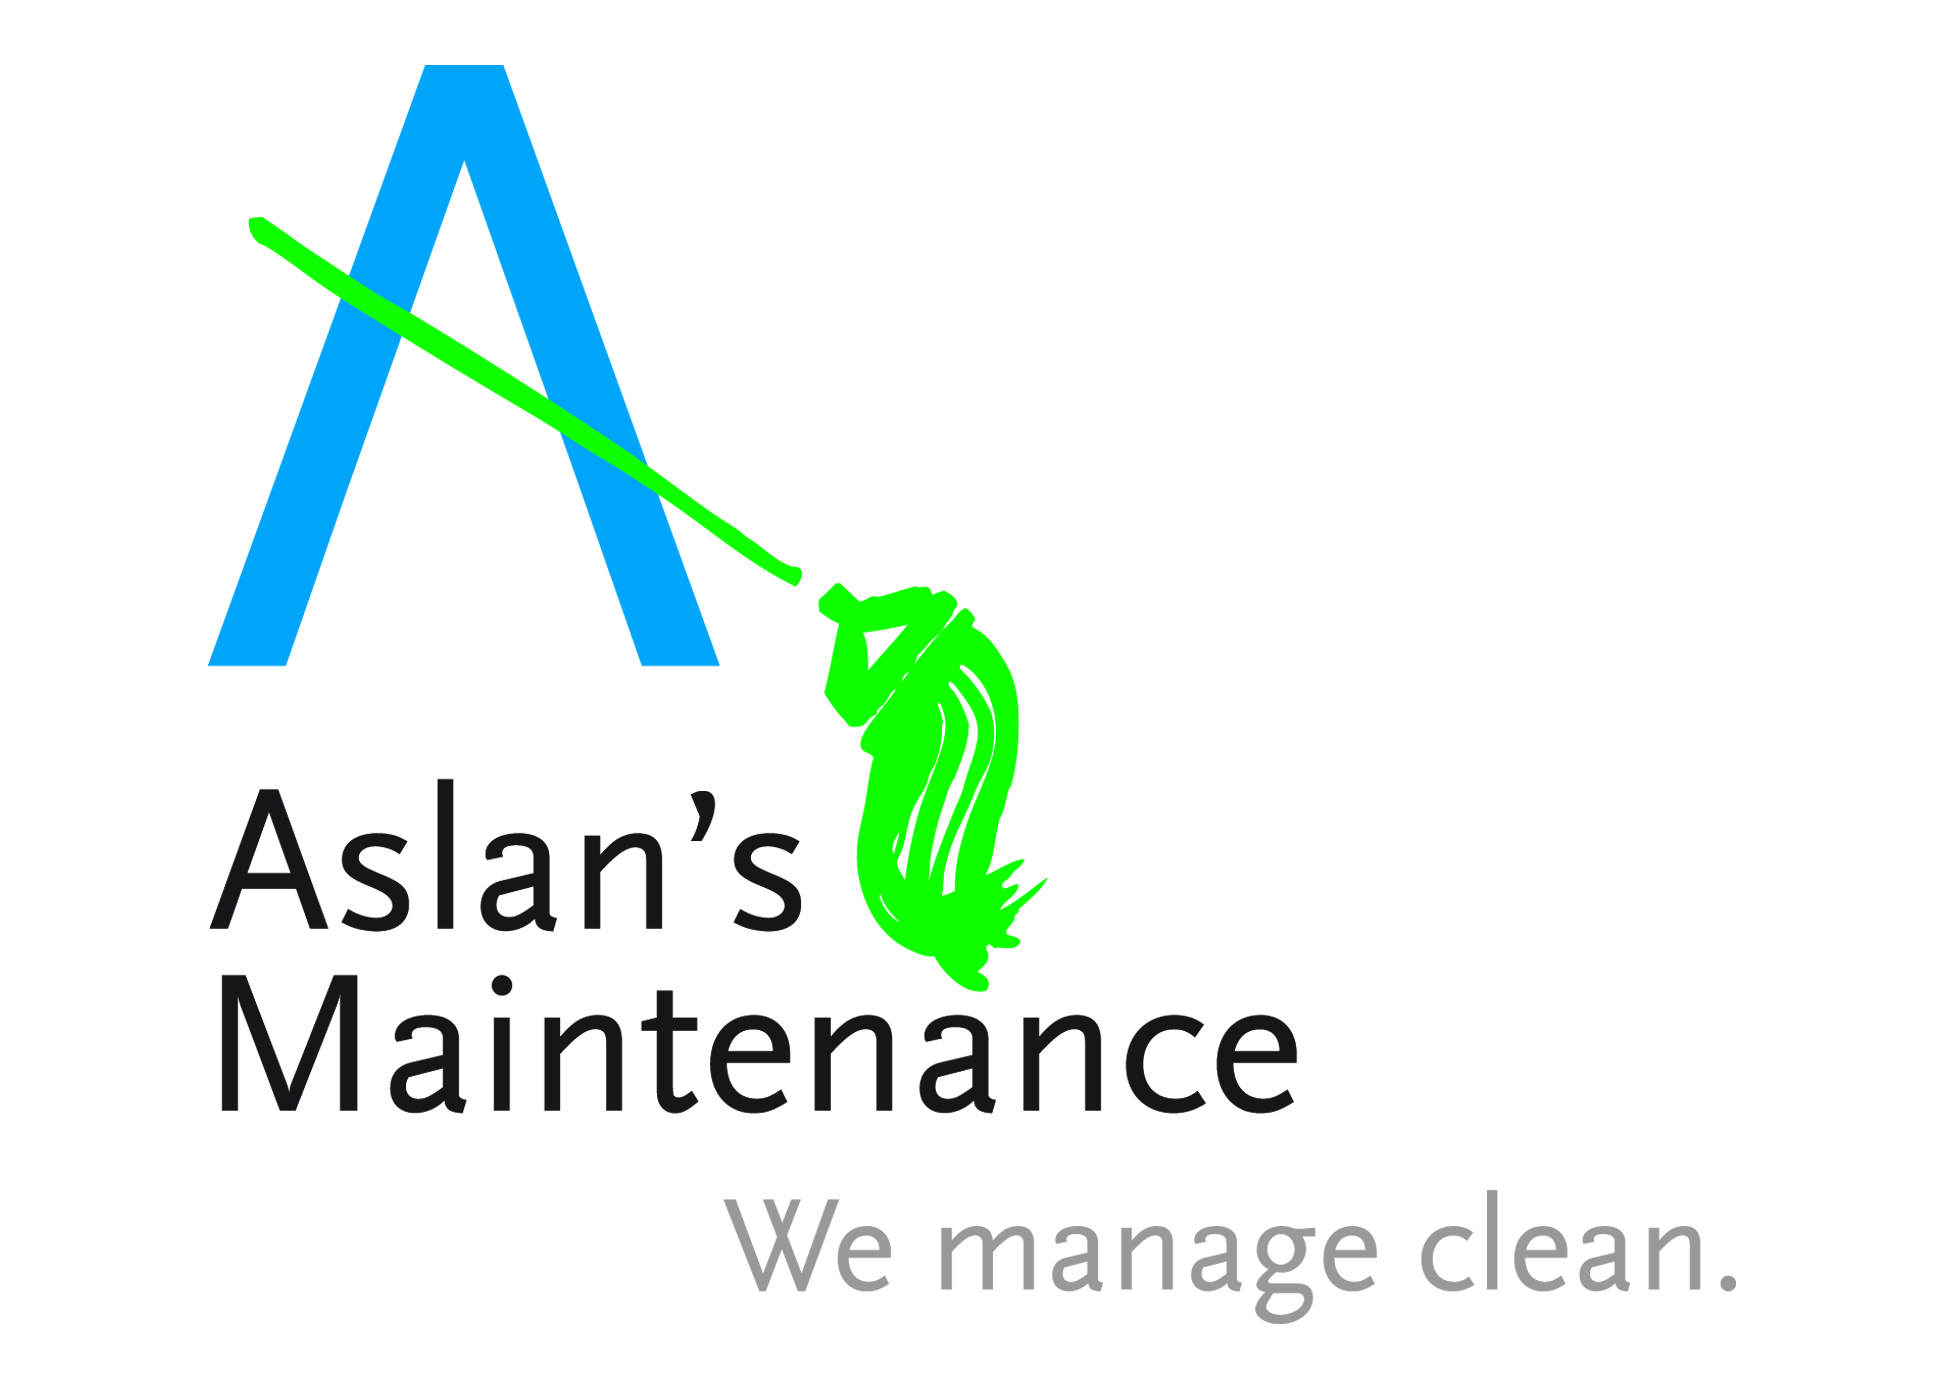 Identity and tagline for a commercial cleaning company in Lebanon, New Hampshire.